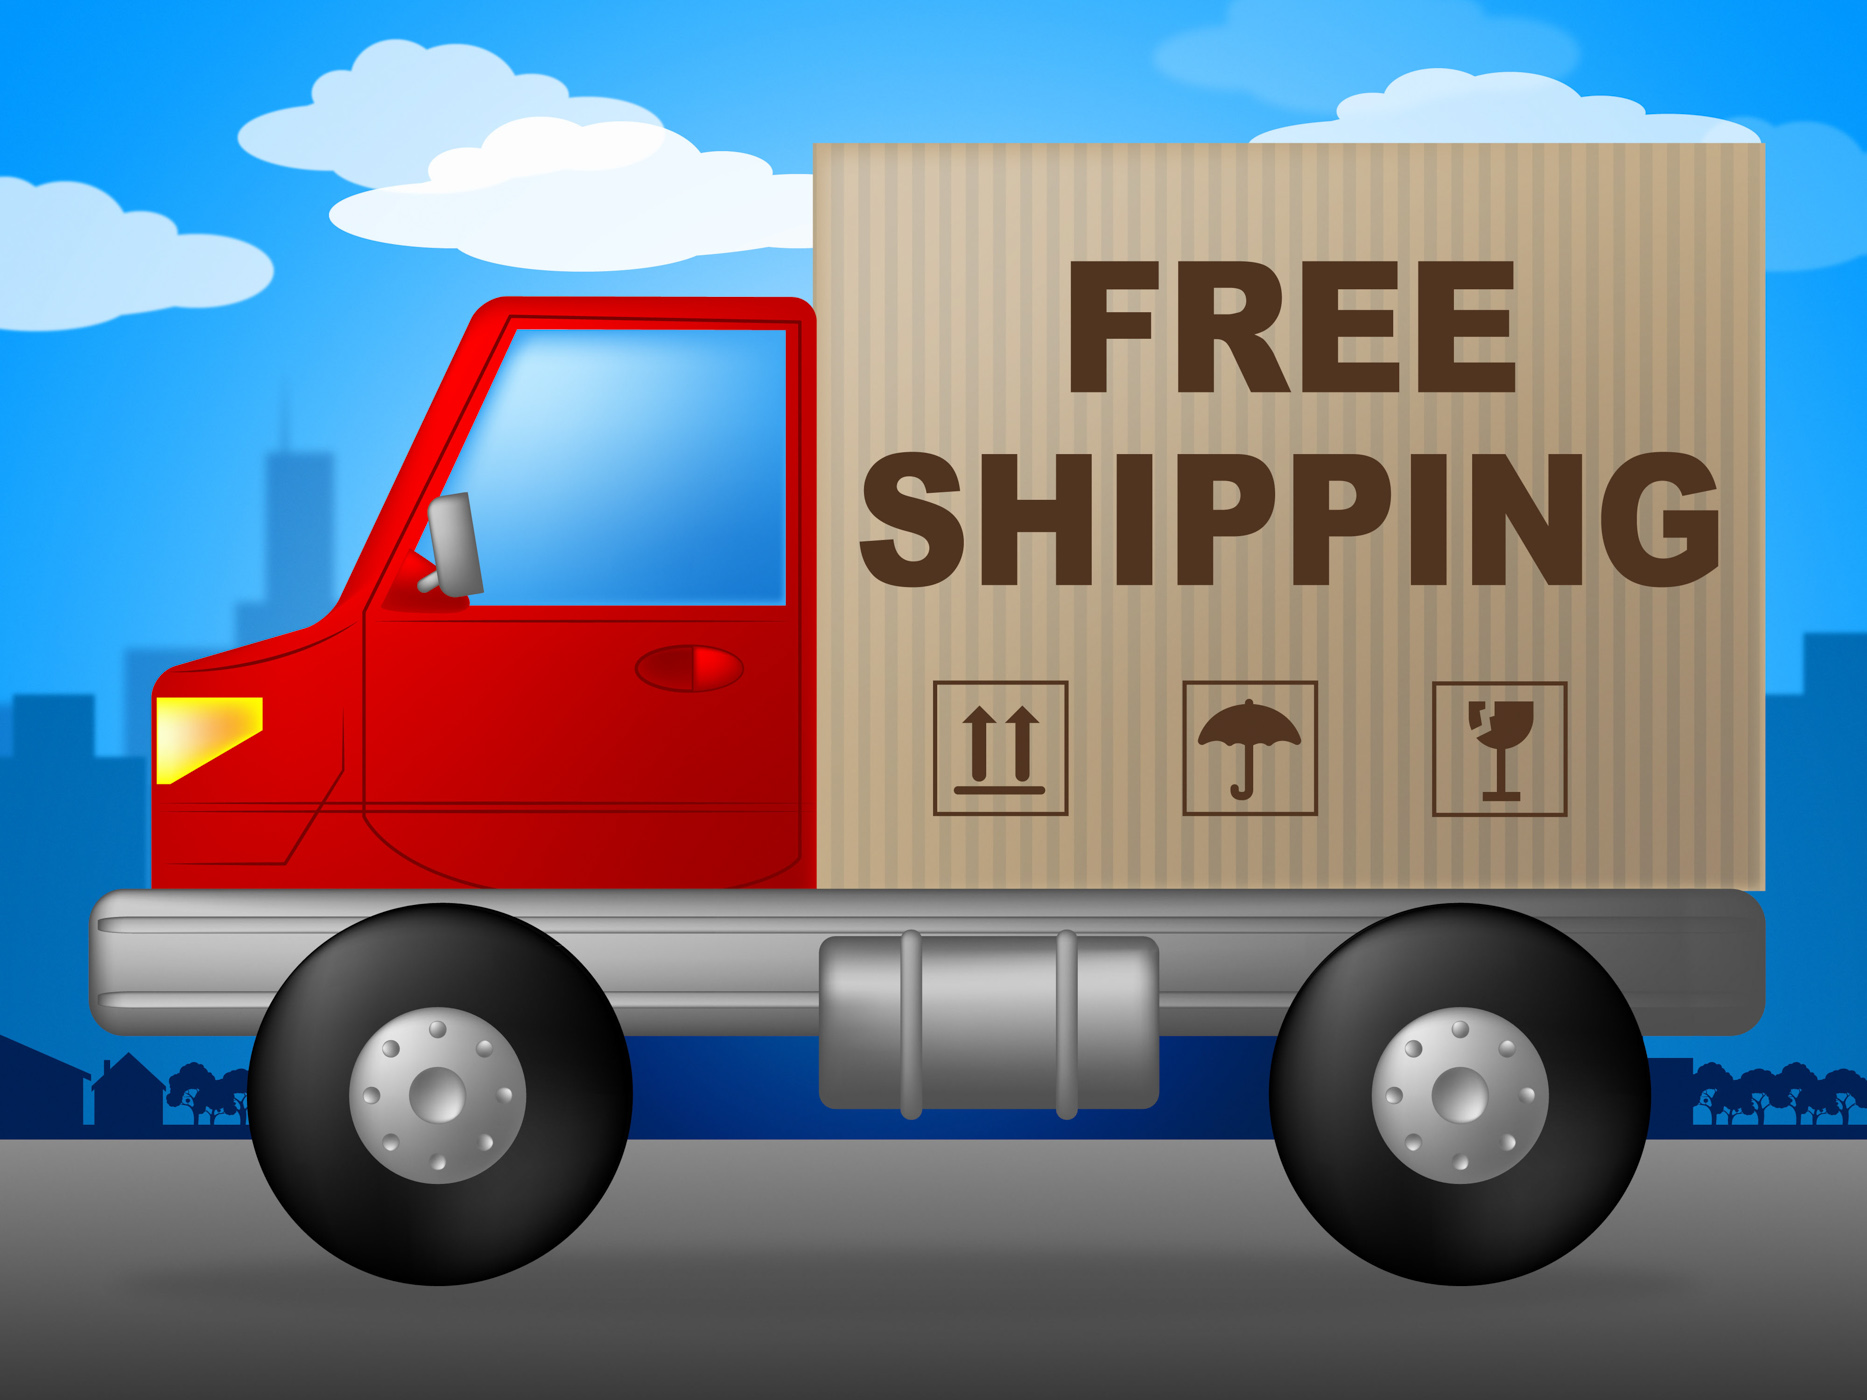 Free Shipping Shows With Our Compliments And Deliver, Handout, Withourcomplimen, Shipping, Sending, HQ Photo